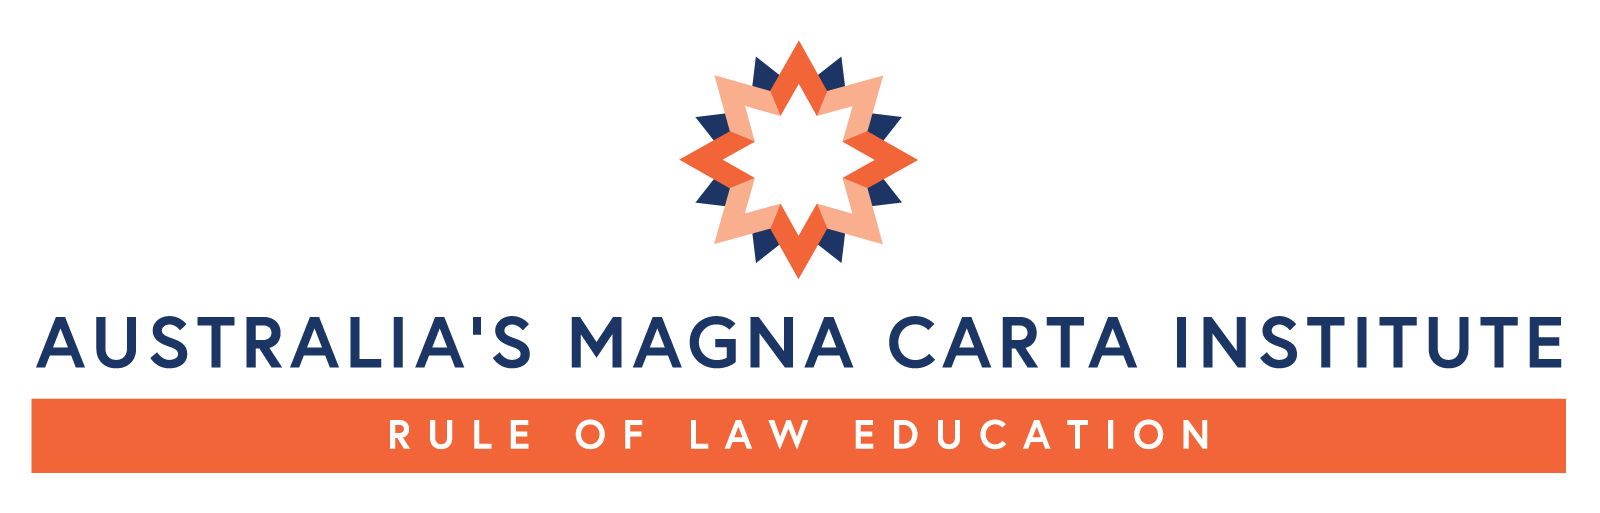 Australia's Magna Carta Institute - Rule of Law Education